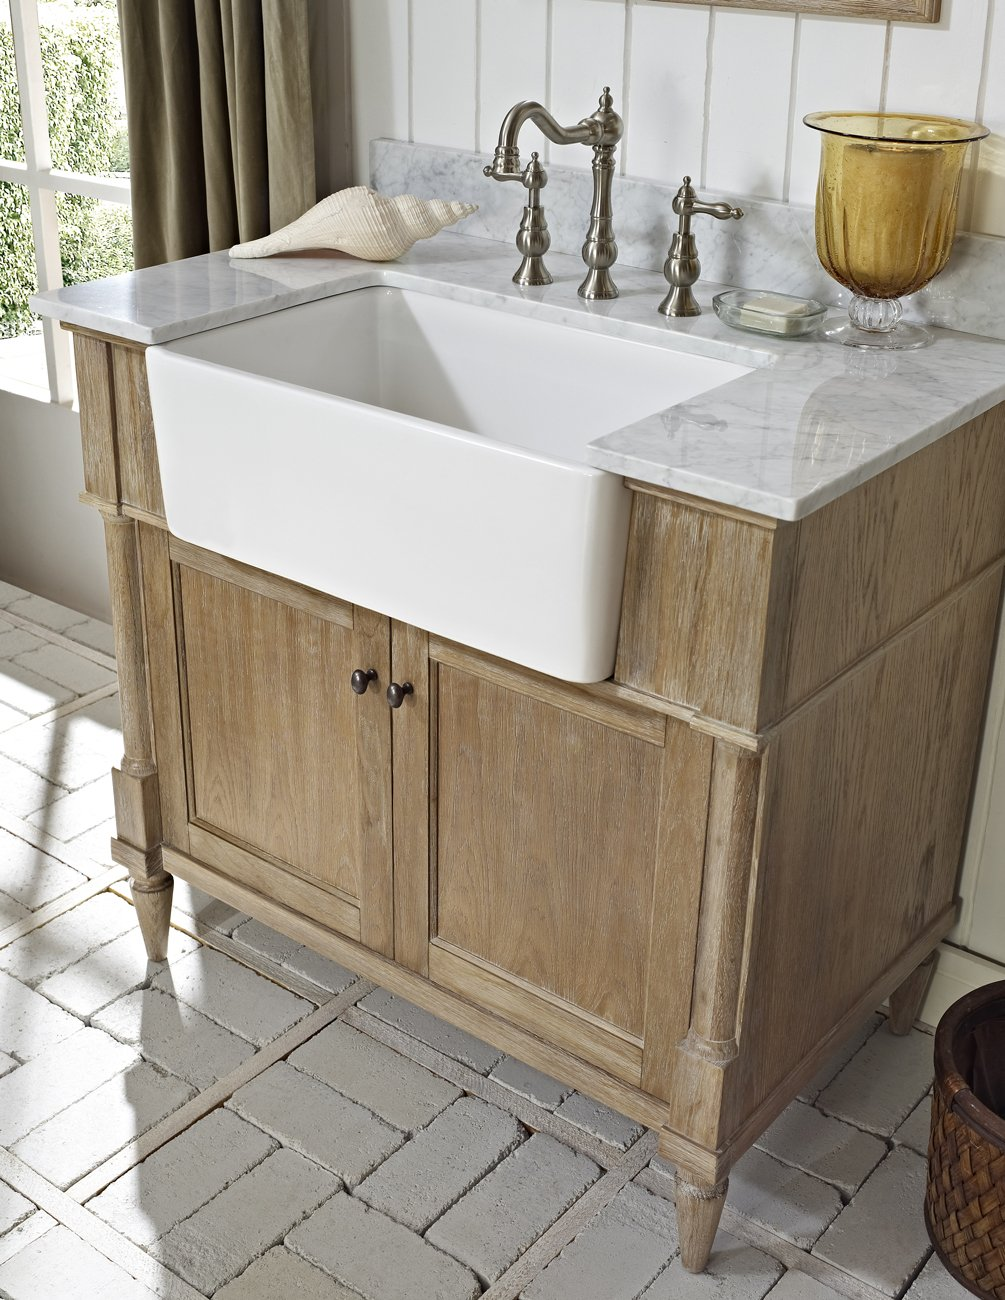 washstand bathroom of re a to looking remodel one by you building or pin fabulous look vanity kind farmhouse here some if options are create